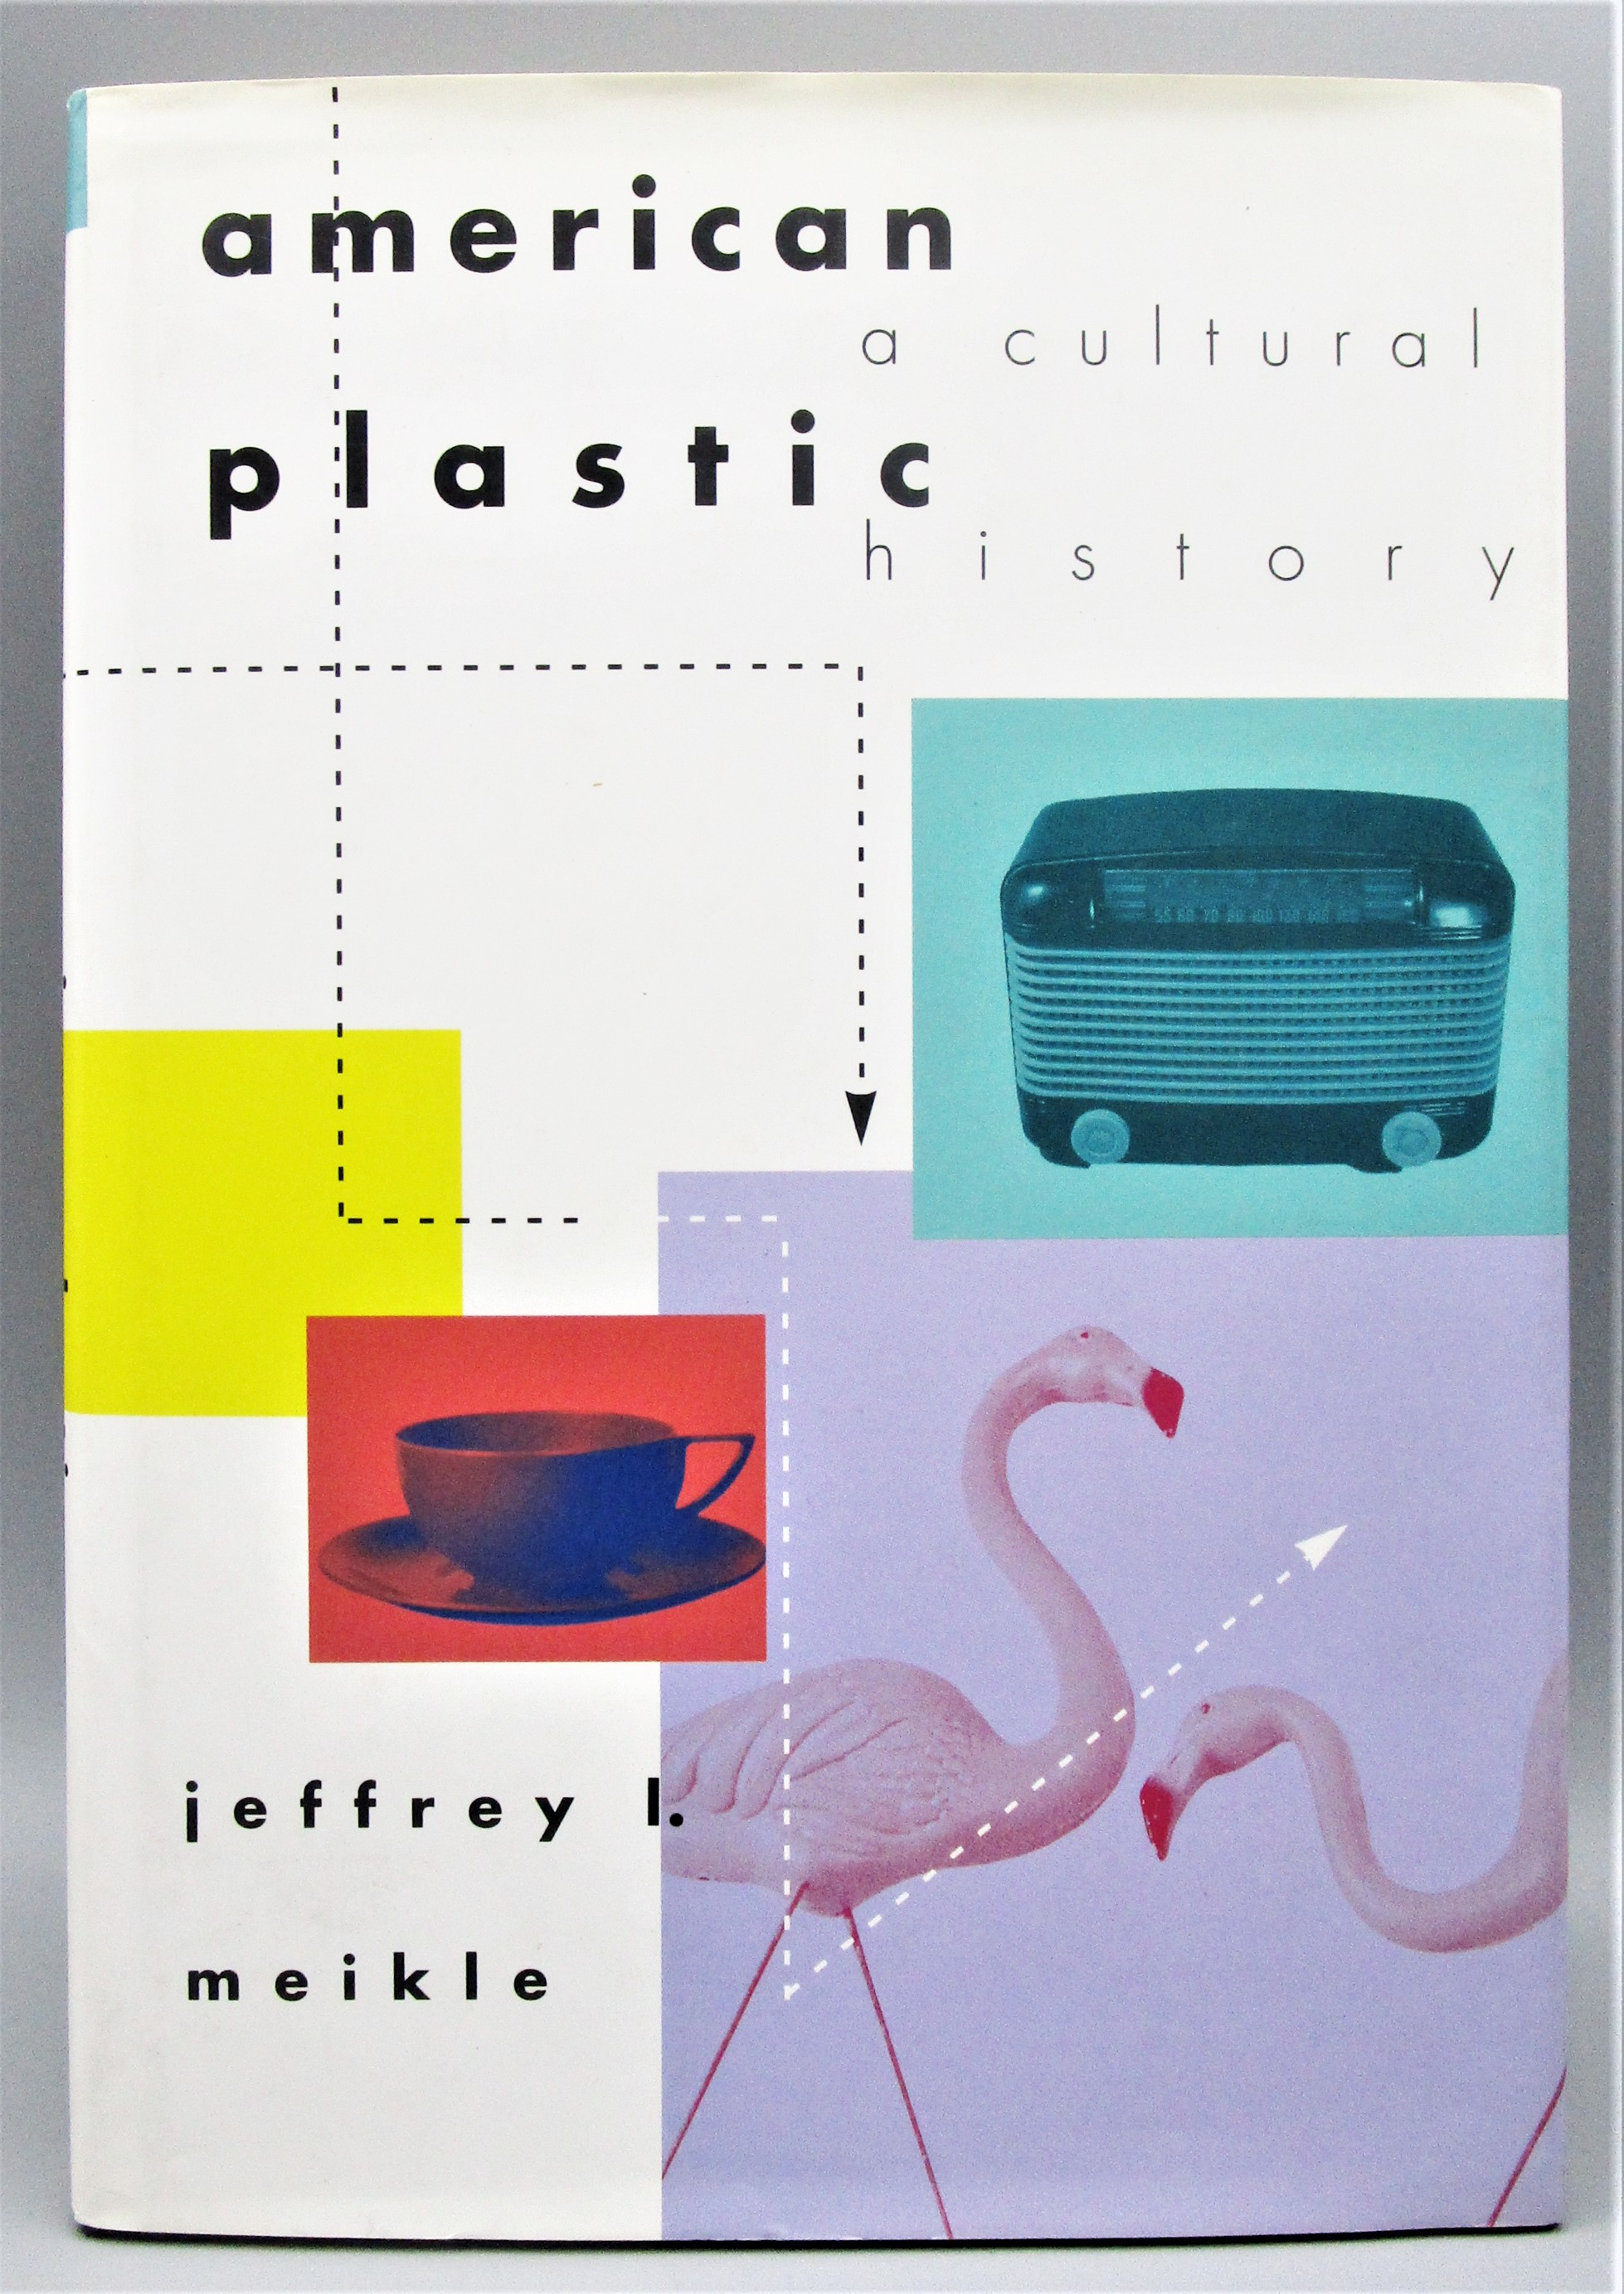 AMERICAN PLASTIC: A CULTURAL HISTORY, by Jeffrey L. Meikle - 1995